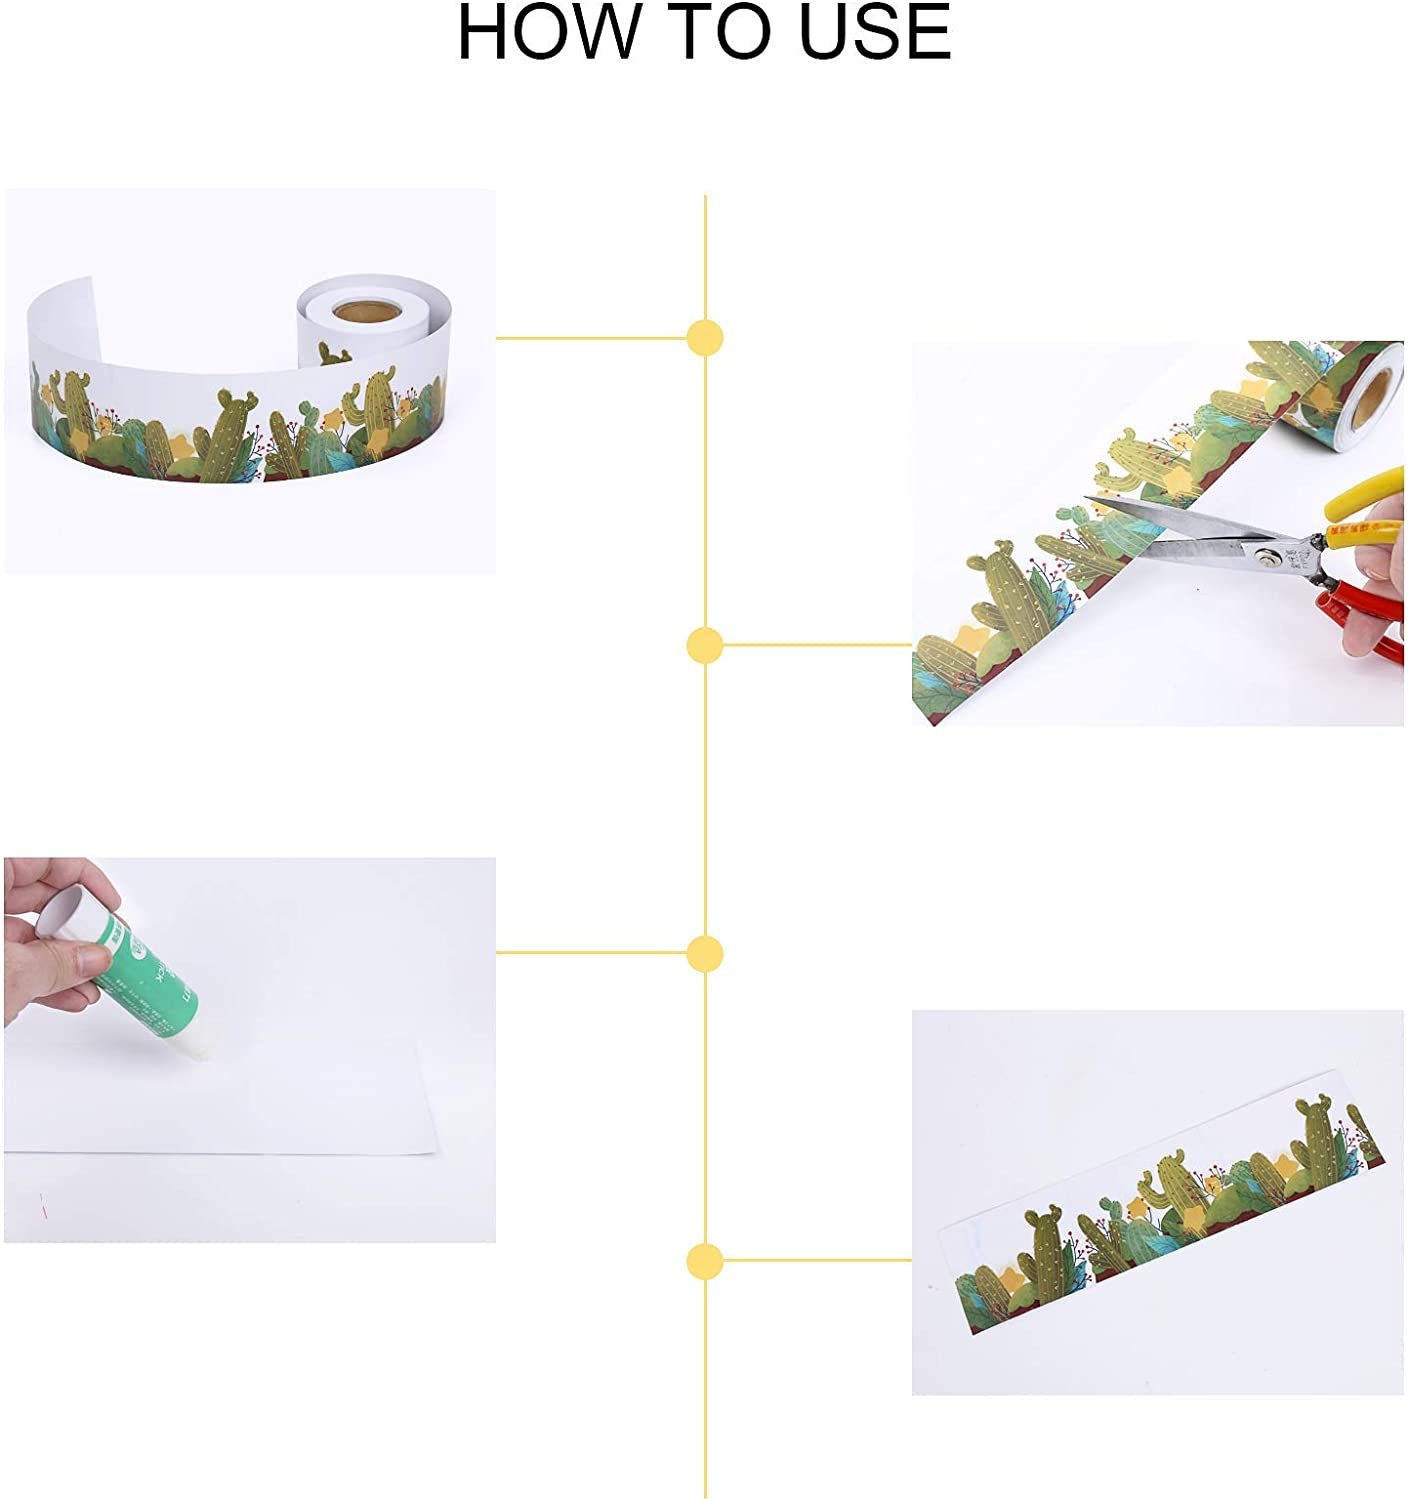 65.6 Feet Sisenny Removable Border Decoration Border Wall Decor Trim Black Board A Sharp Bunch Line-Up Borders Rolled Cactus Bulletin Borders for Classroom Decoration